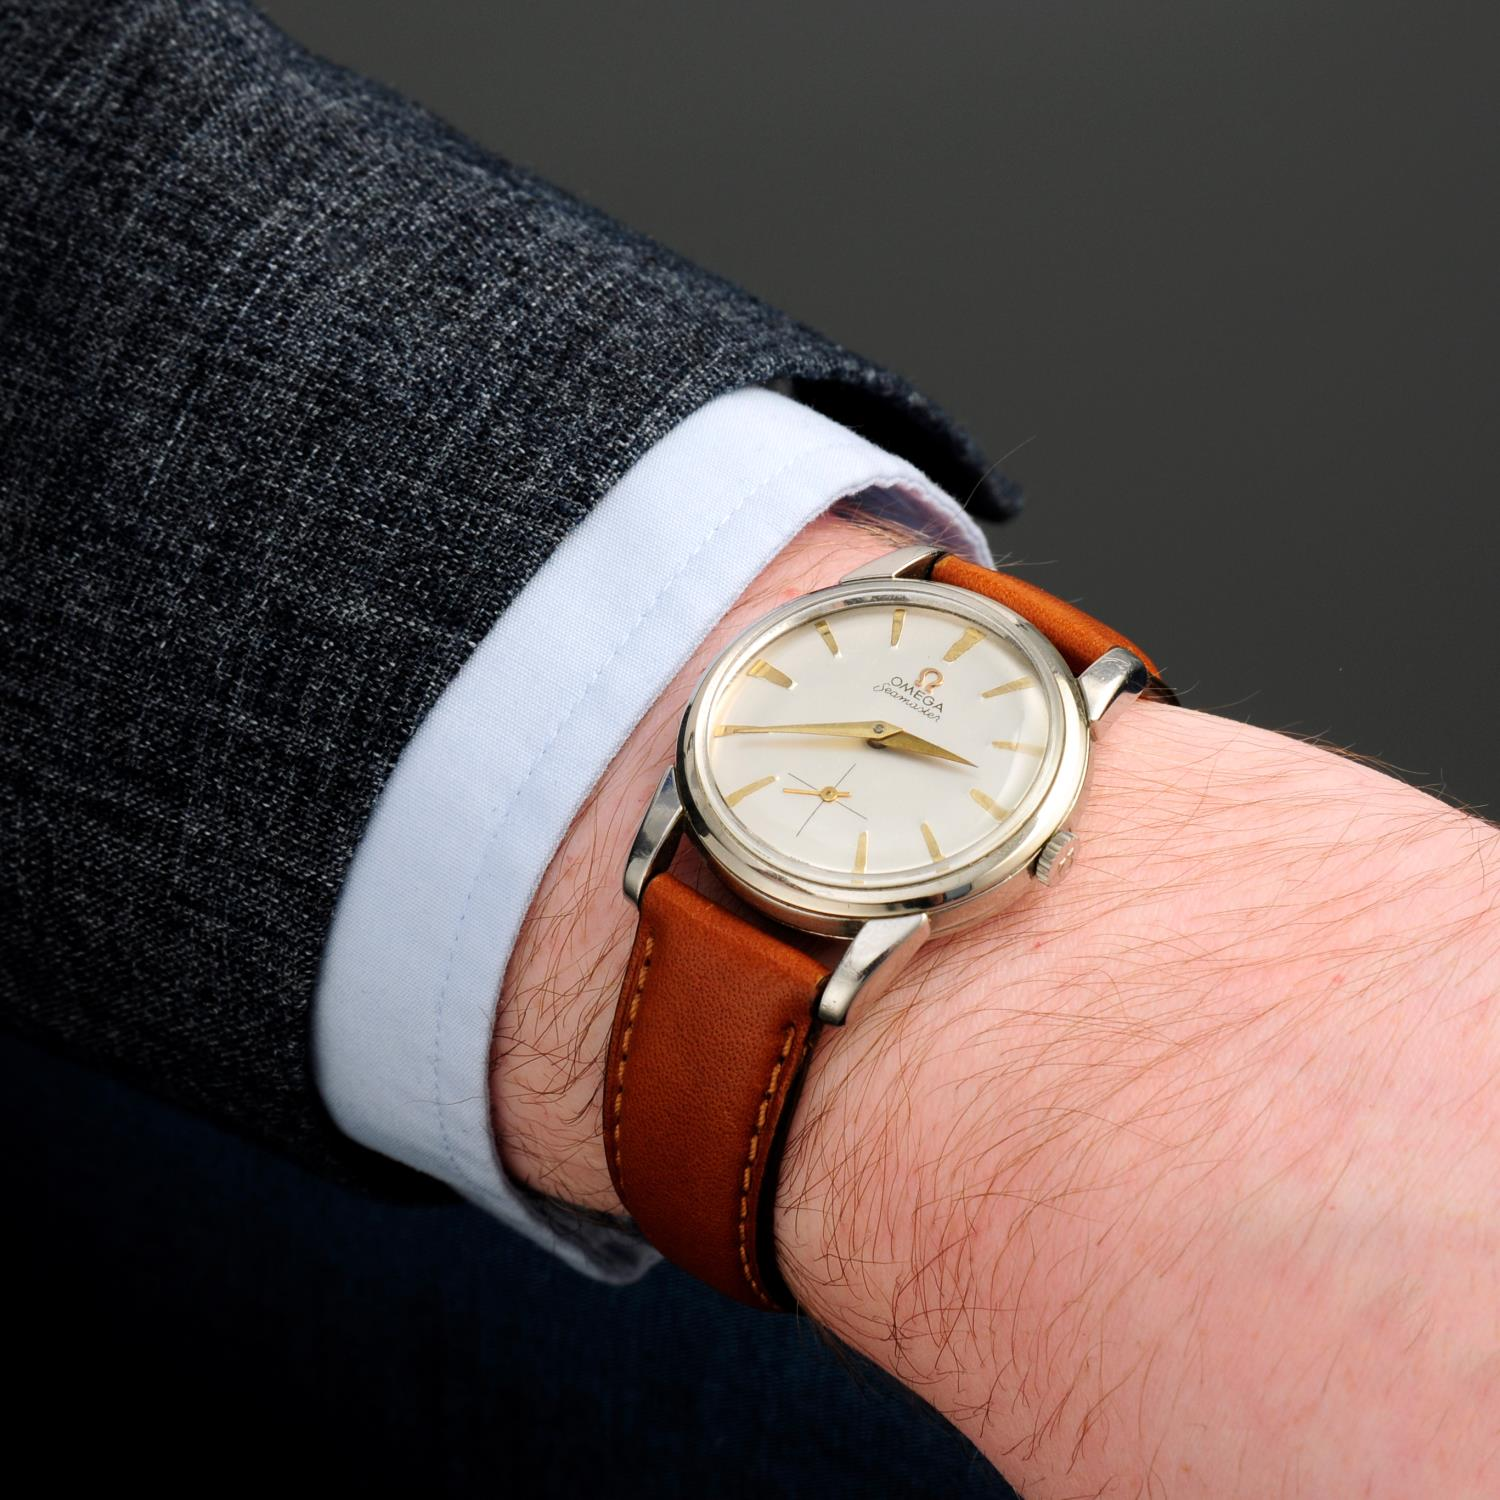 OMEGA - a Seamaster wrist watch.Stainless steel case. - Image 3 of 5